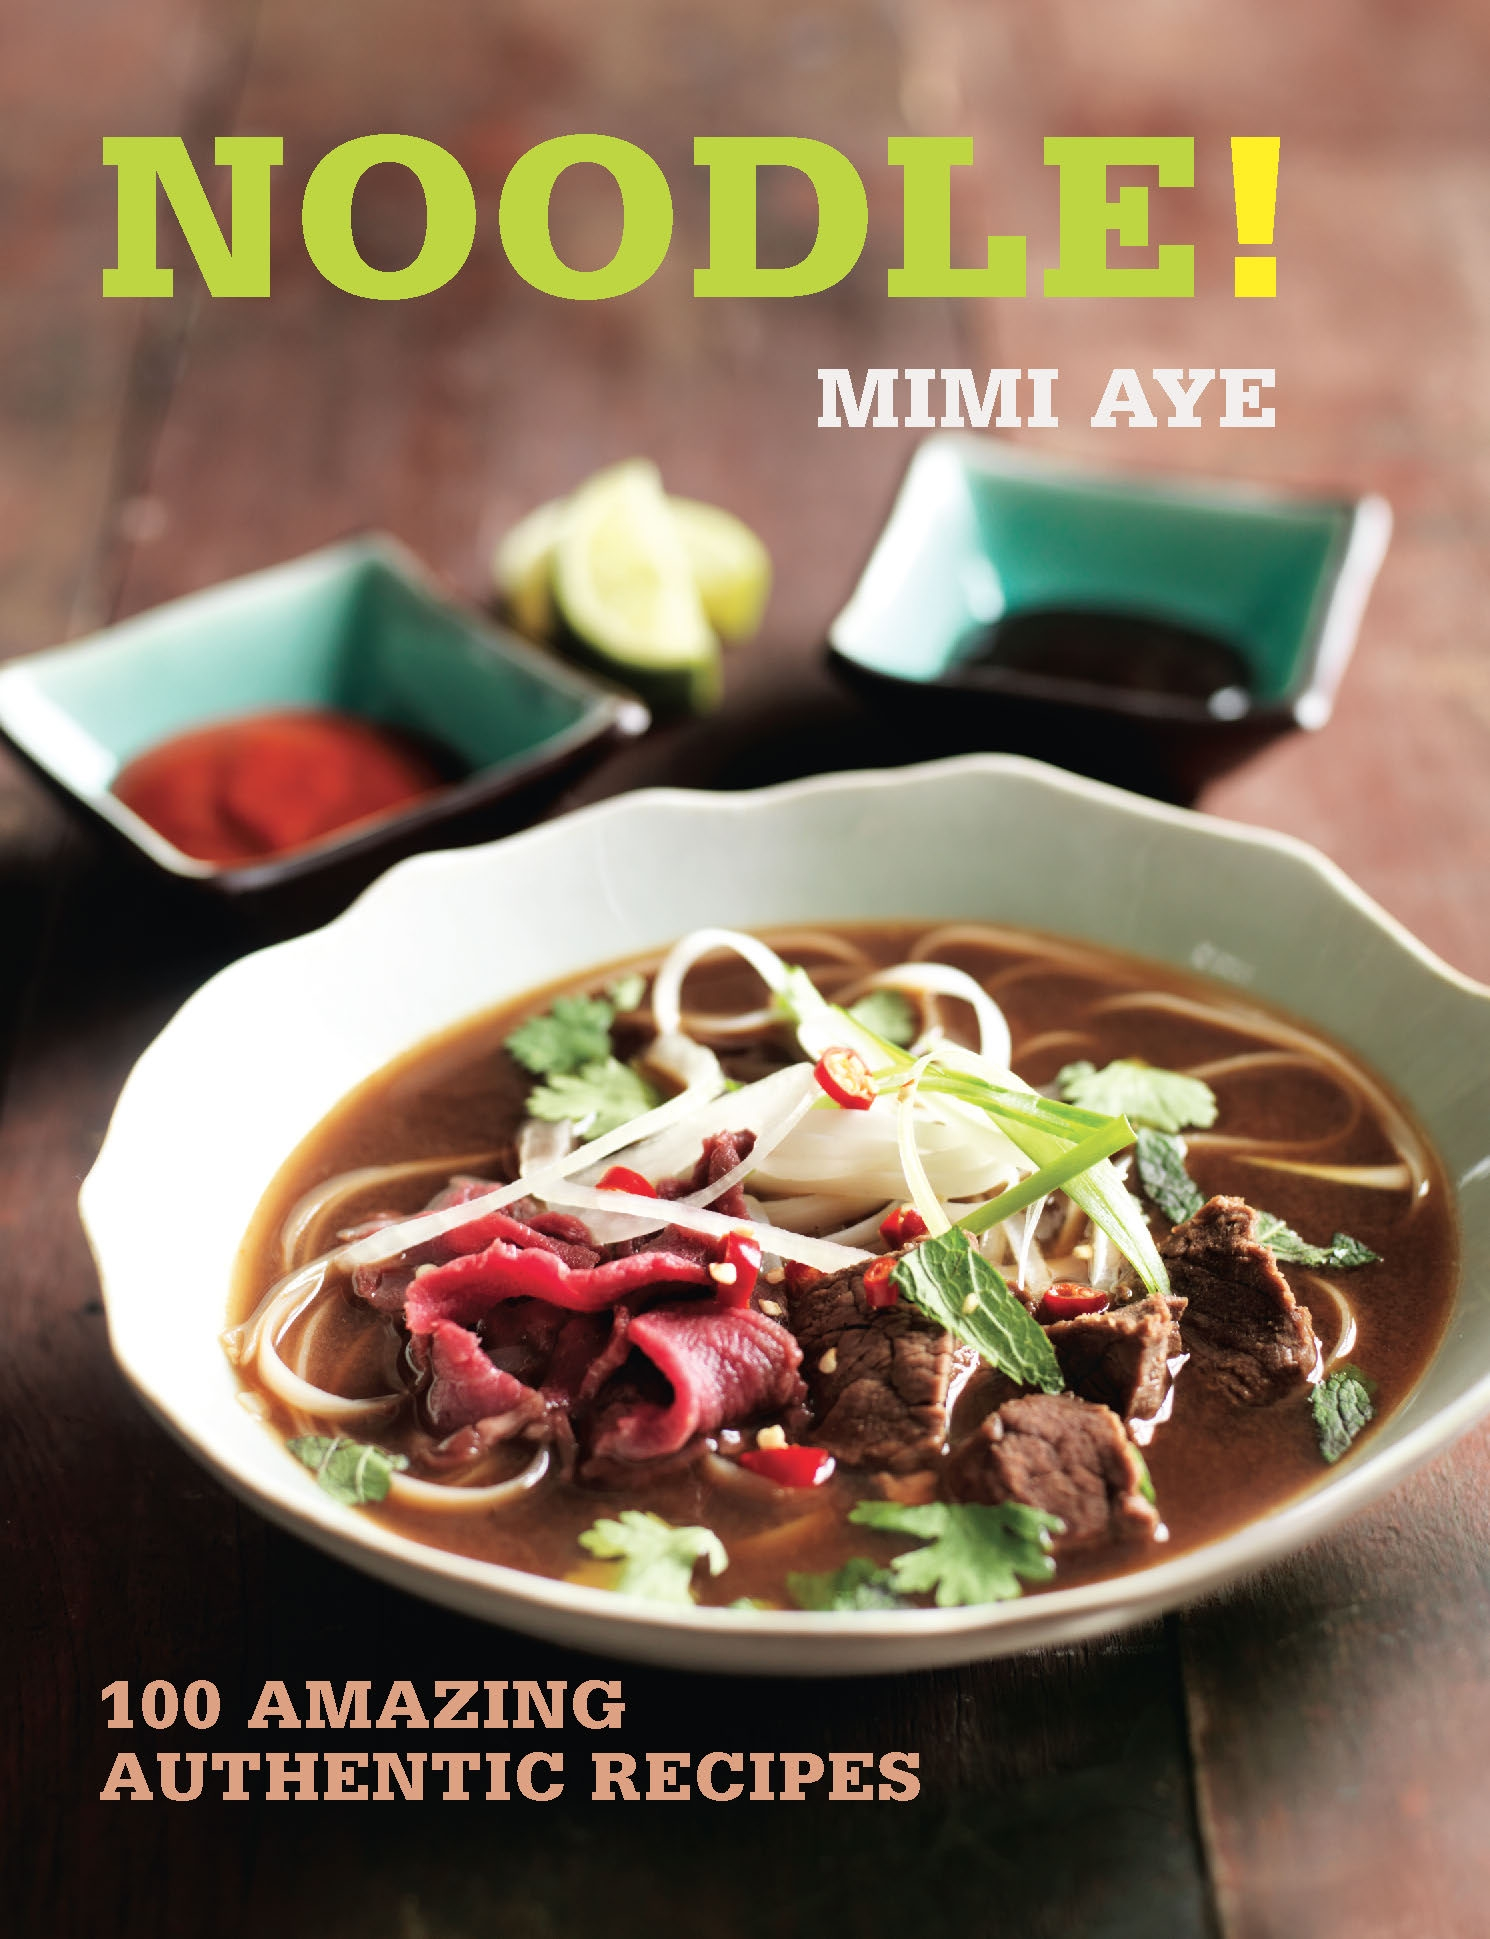 Noodle! 100 Amazing Authentic Recipes